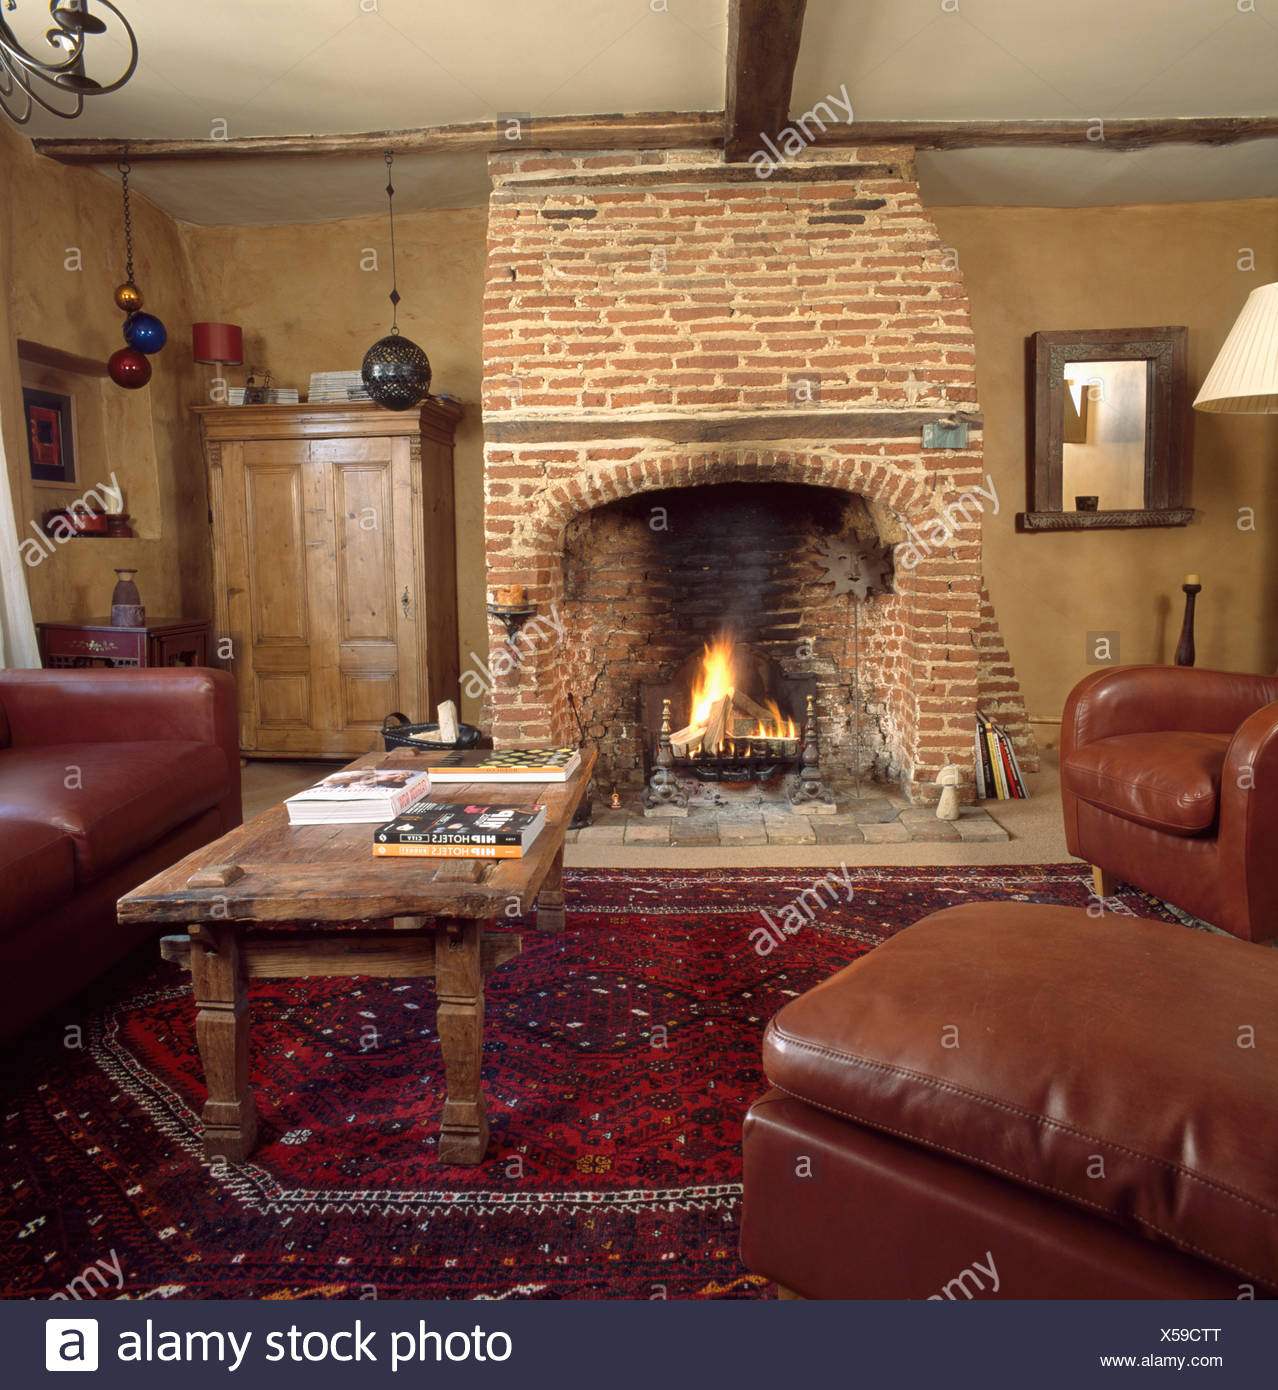 Lighted Fire In Exposed Brick Fireplace In Neutral Country